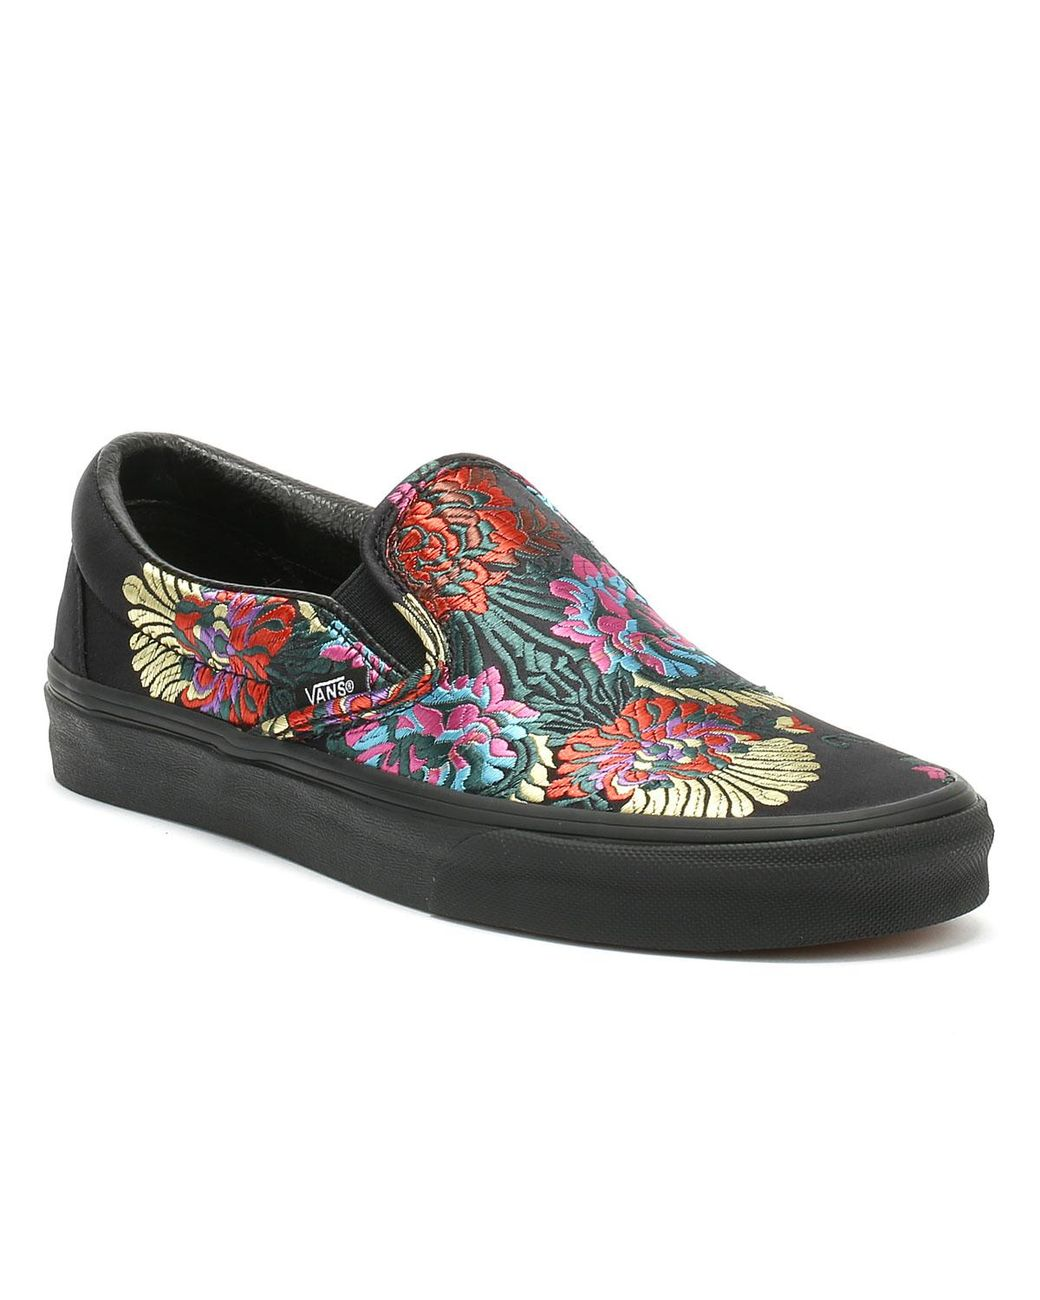 6950a73f9e Lyst - Vans Classic Slip On Festival Satin Womens Black Trainers in ...